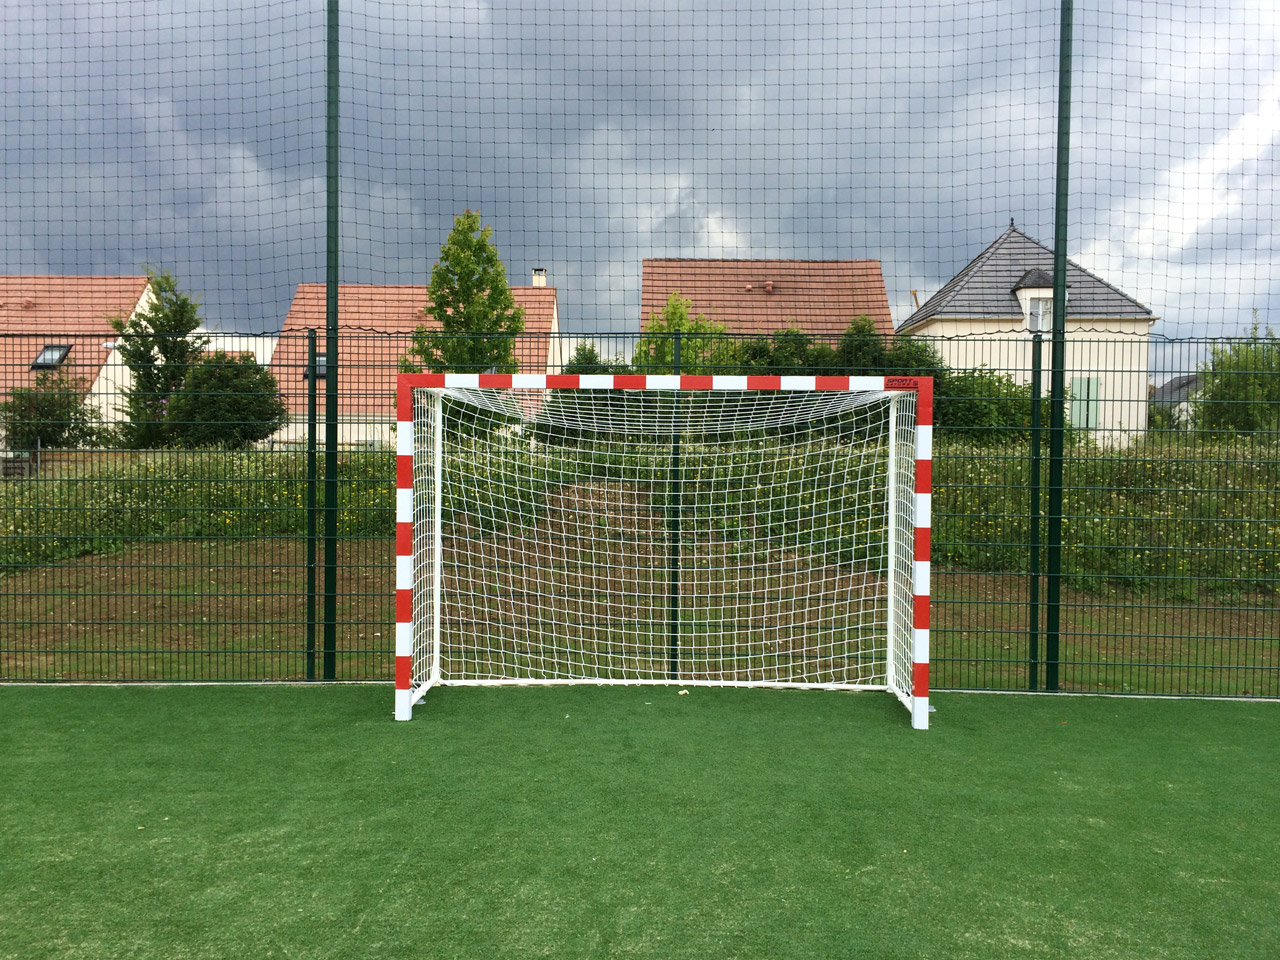 But Hand-Foot 3 x 2 m avec bandes rouges